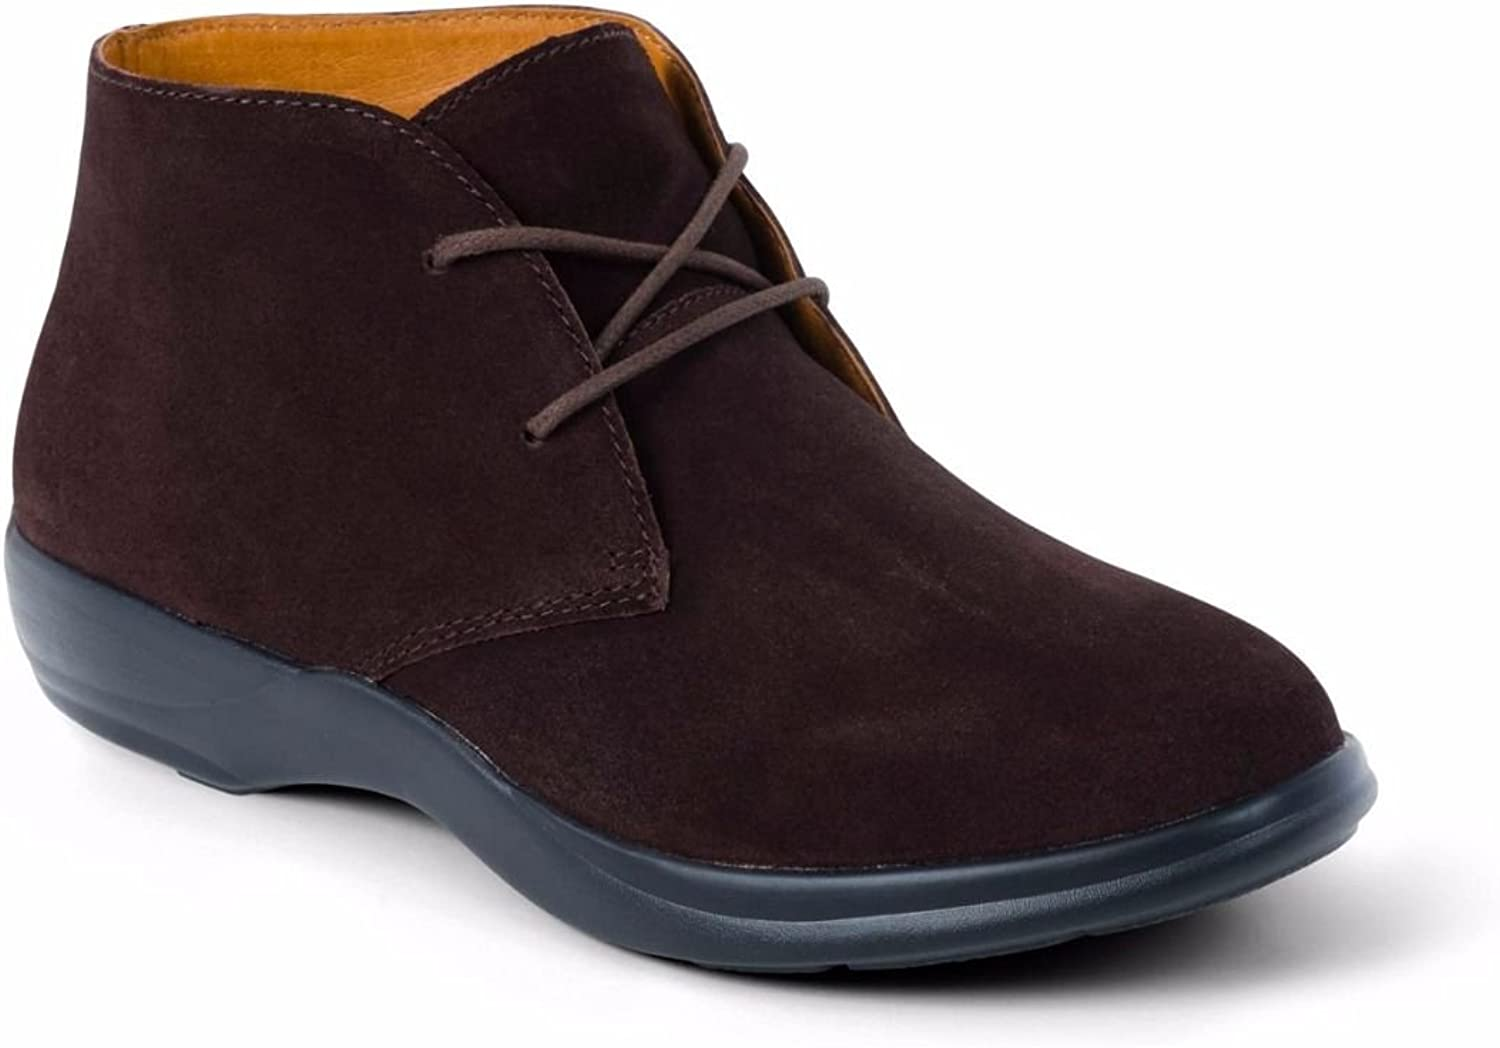 DR. COMFORT Women's Cara Casual Suede Leather Bootie Chukka Boot Brown